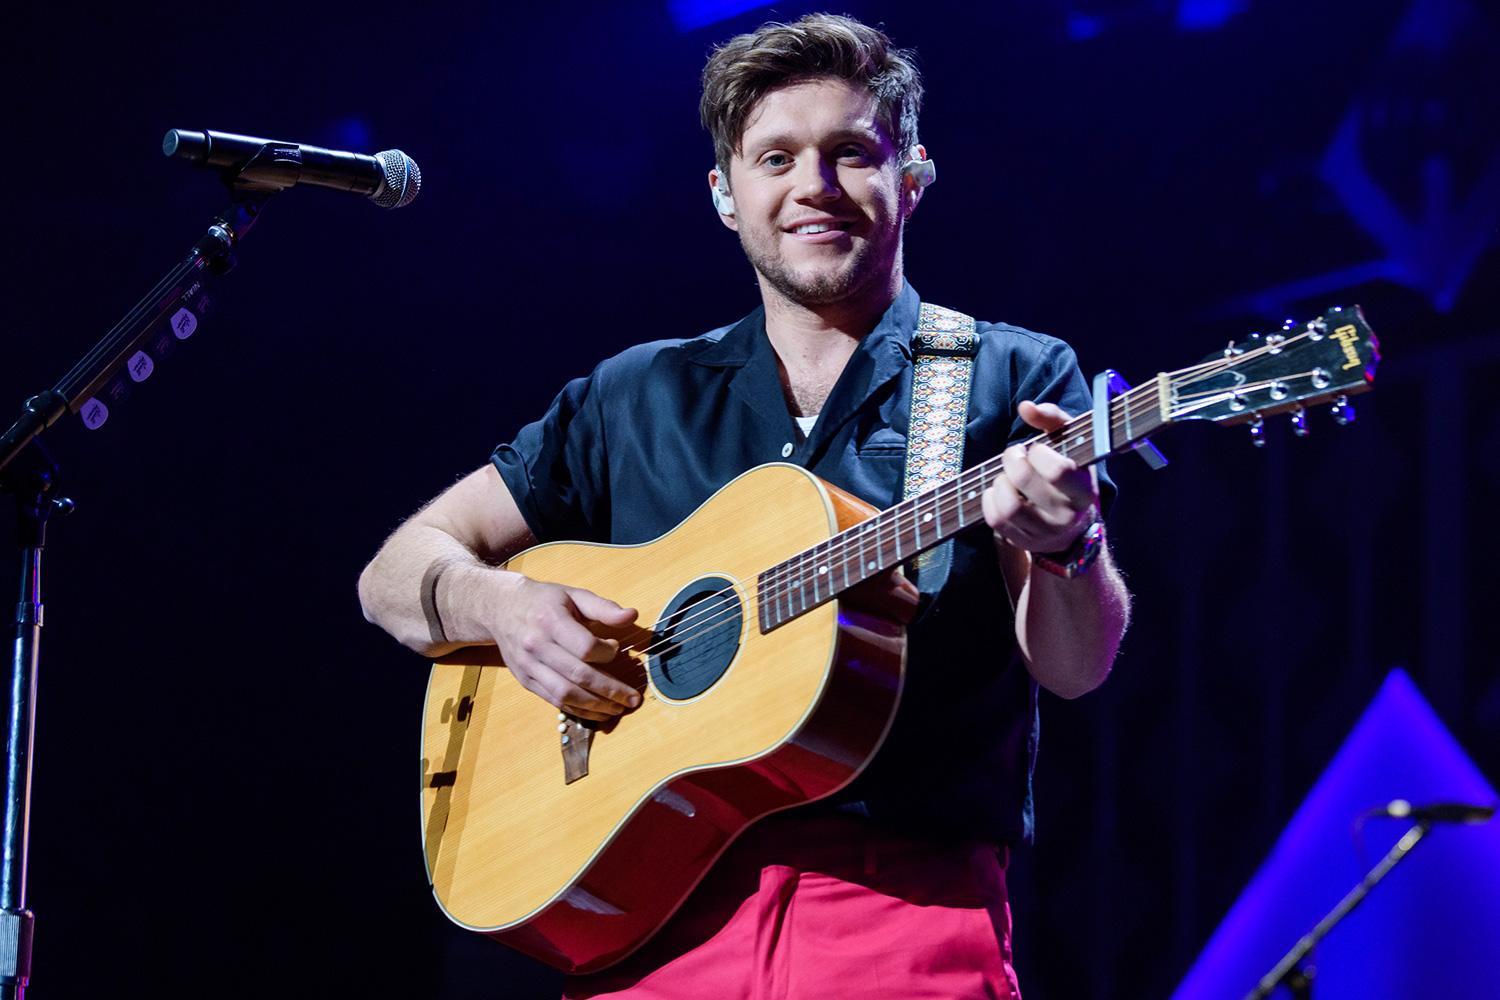 Niall Horan performs on stage during Y100 Miami Jingle Ball at BB&T Center on December 22, 2019 in Sunrise, Florida